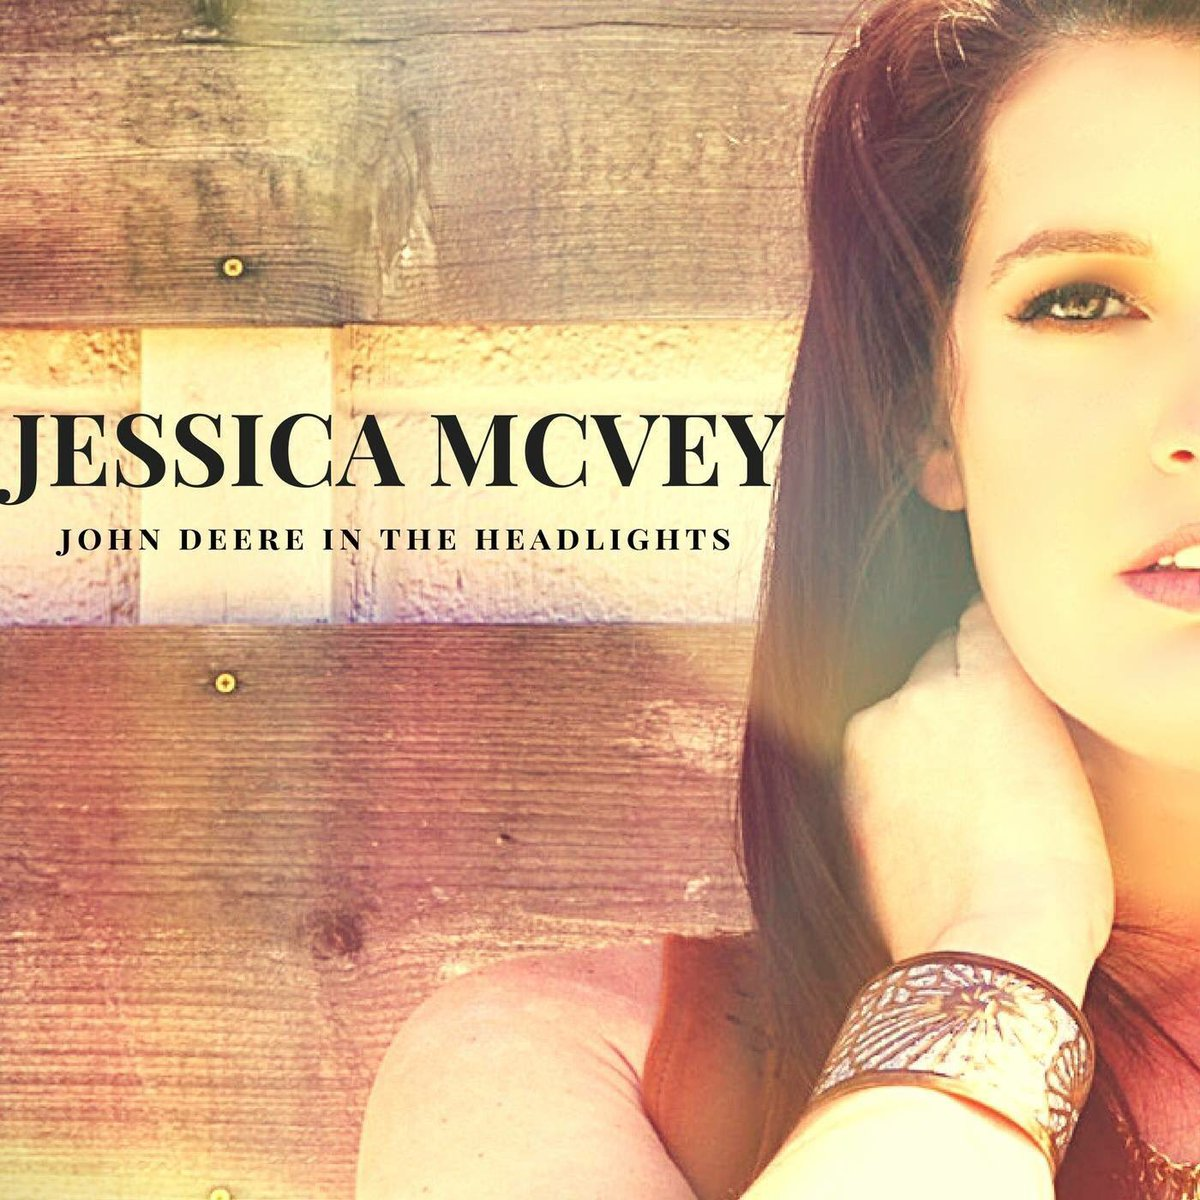 http://www. facebook.com/jessicamcveymu sic &nbsp; …   Hey guys make sure you head over to give my artist page on Facebook a like if you haven&#39;t already #Facebook <br>http://pic.twitter.com/8ZMqRKB6g4